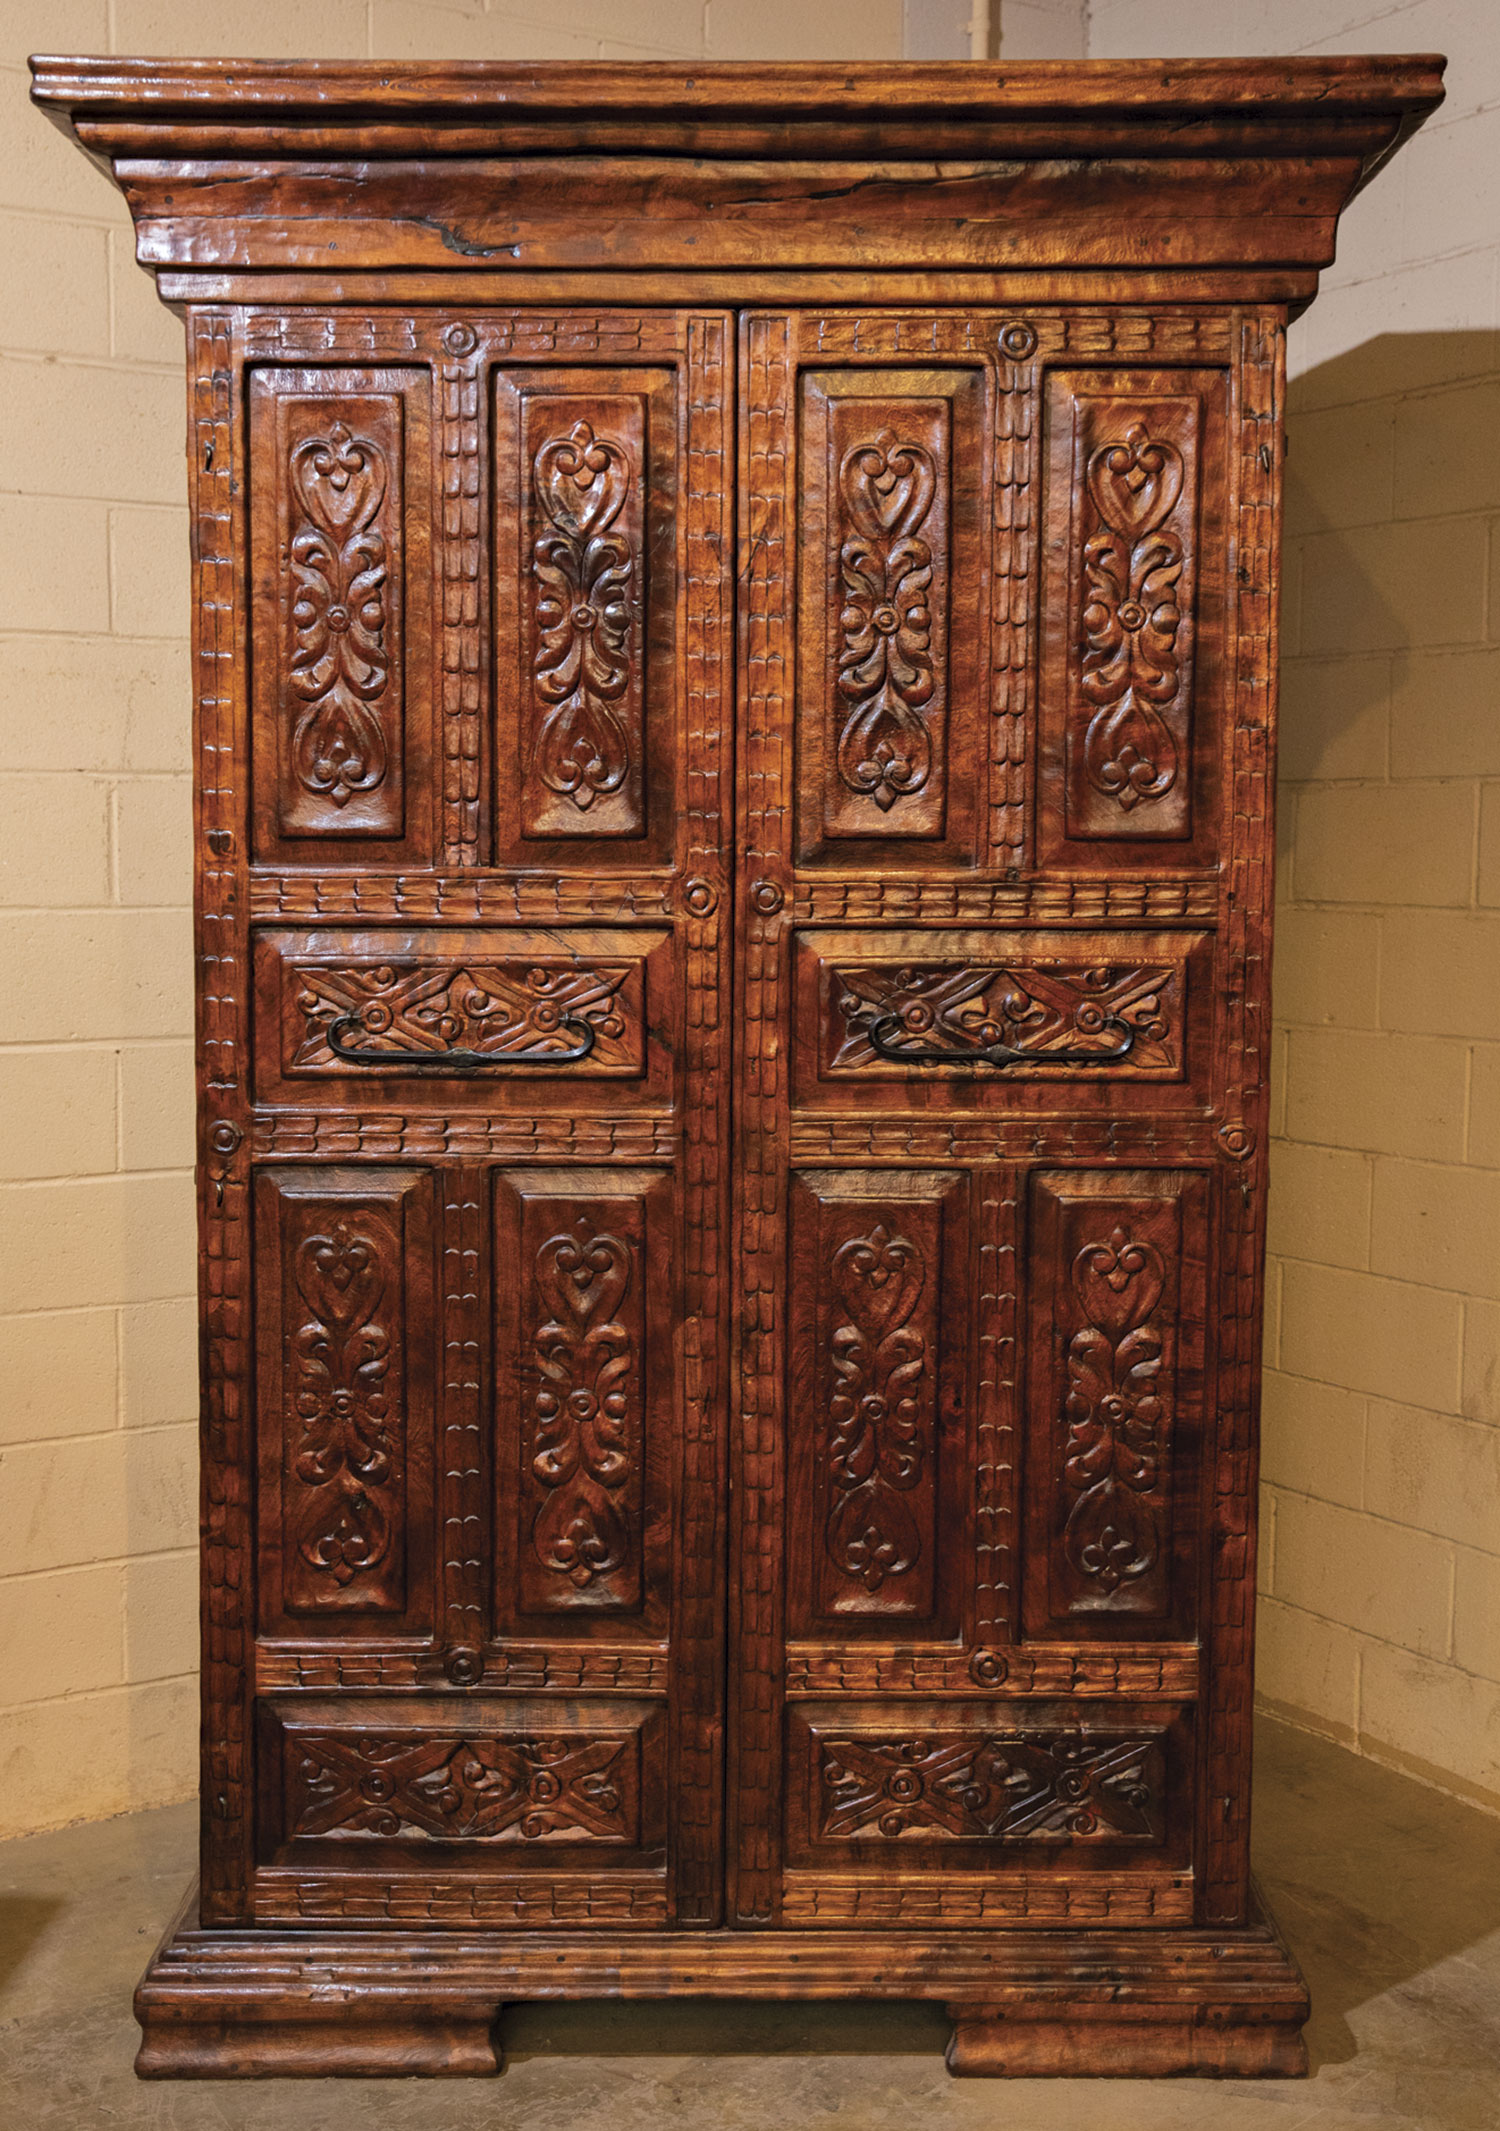 The Tabers Began Their Business By Making Intricately Carved Old World Style Mesquite Furniture Such As This Large Armoire